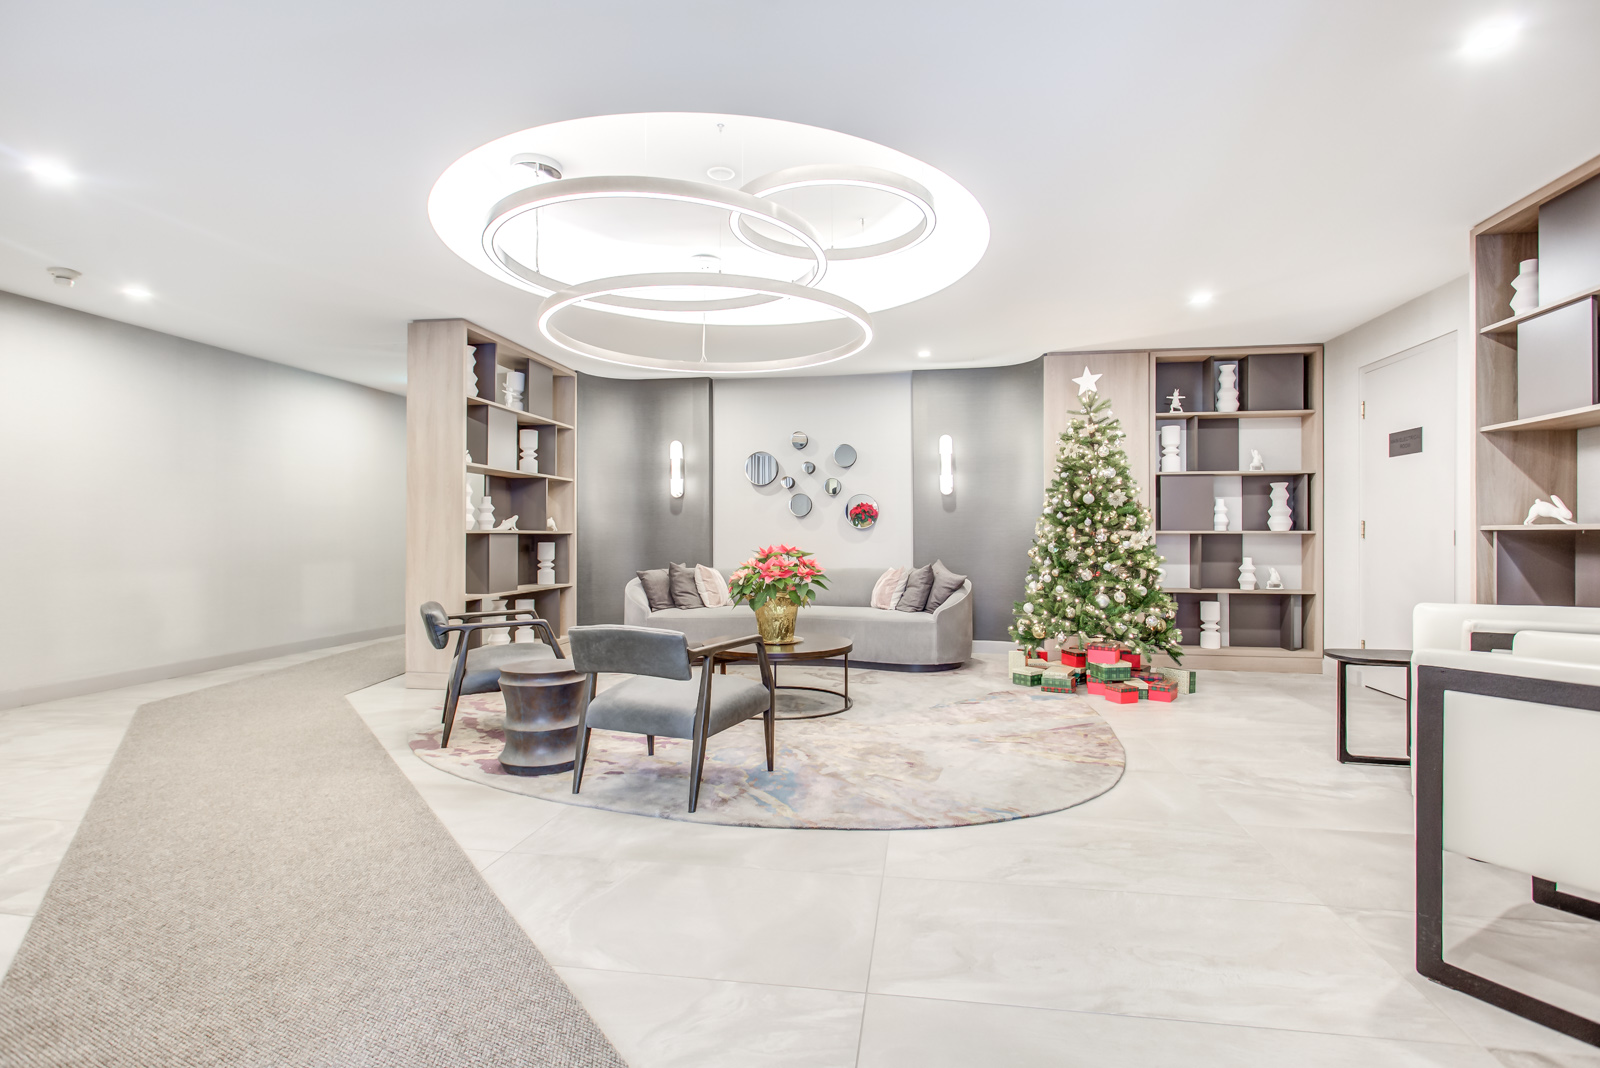 Twenty Collier lobby with Christmas tree, red flowers in vase and shelves full of ornaments.